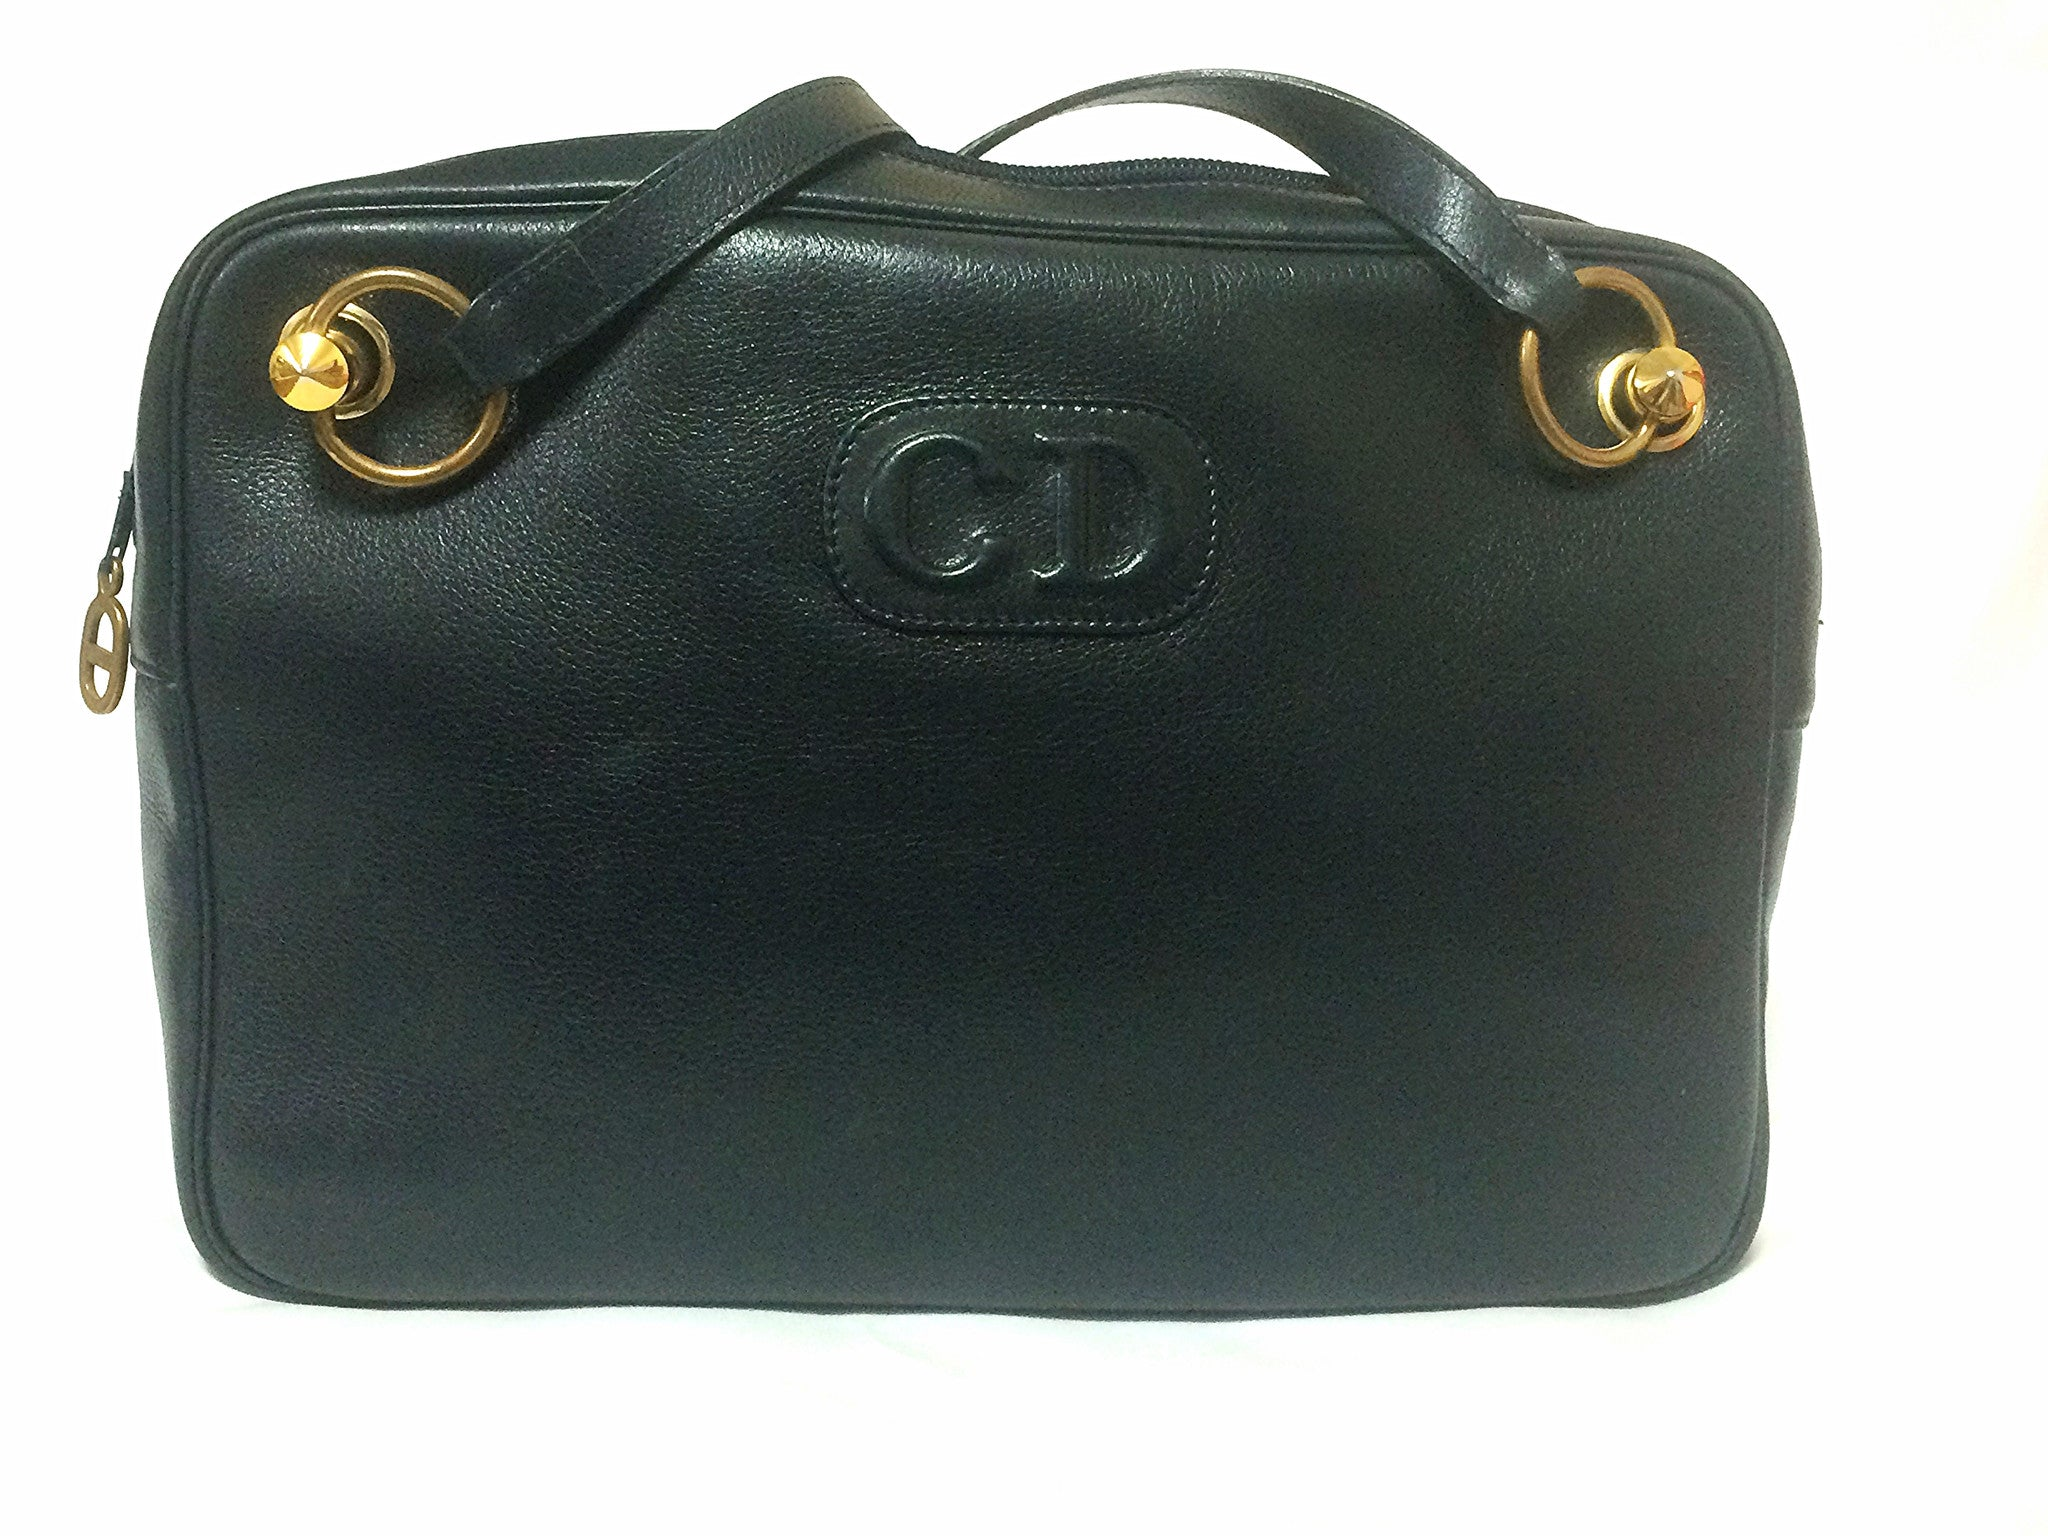 Vintage Christian Dior navy leather shoulder bag with CD embossed motif and golden brass. Masterpiece from MODELE EXCLUSIF. Unisex daily bag